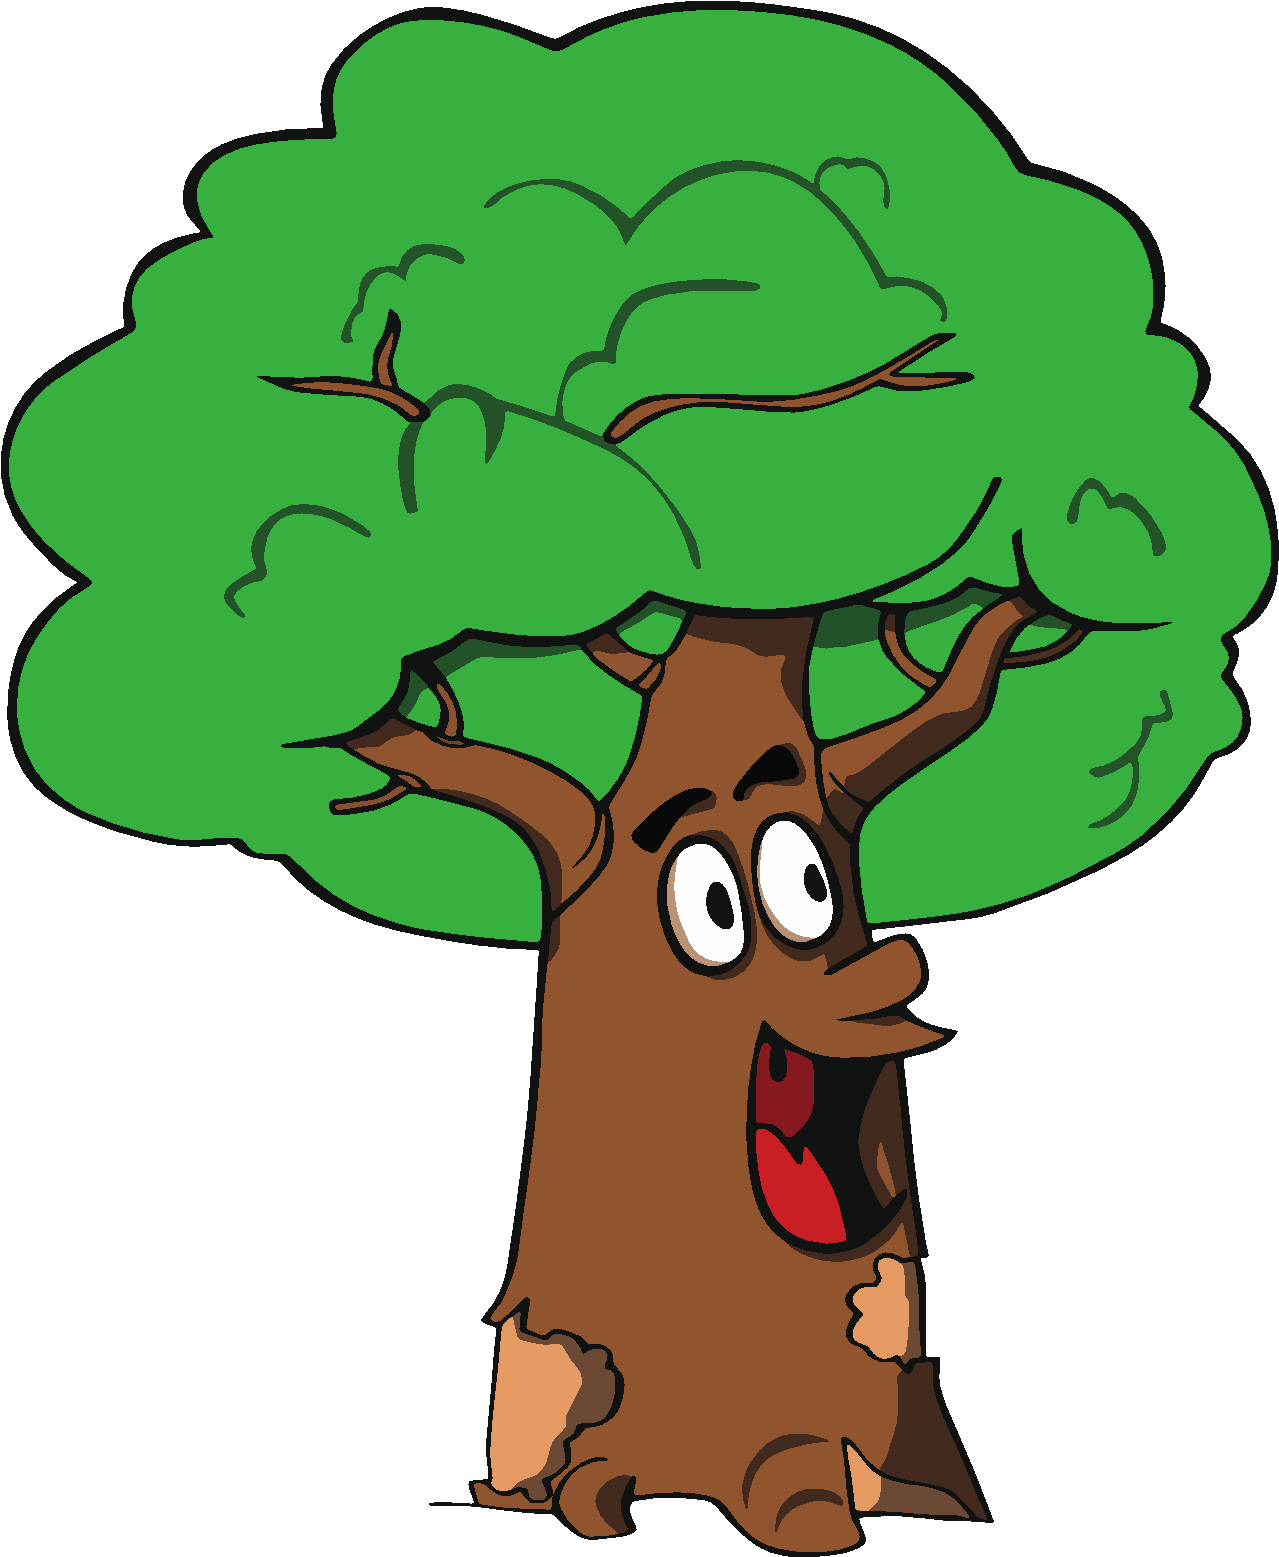 Cartoon Tree Stock Images RoyaltyFree Images amp Vectors